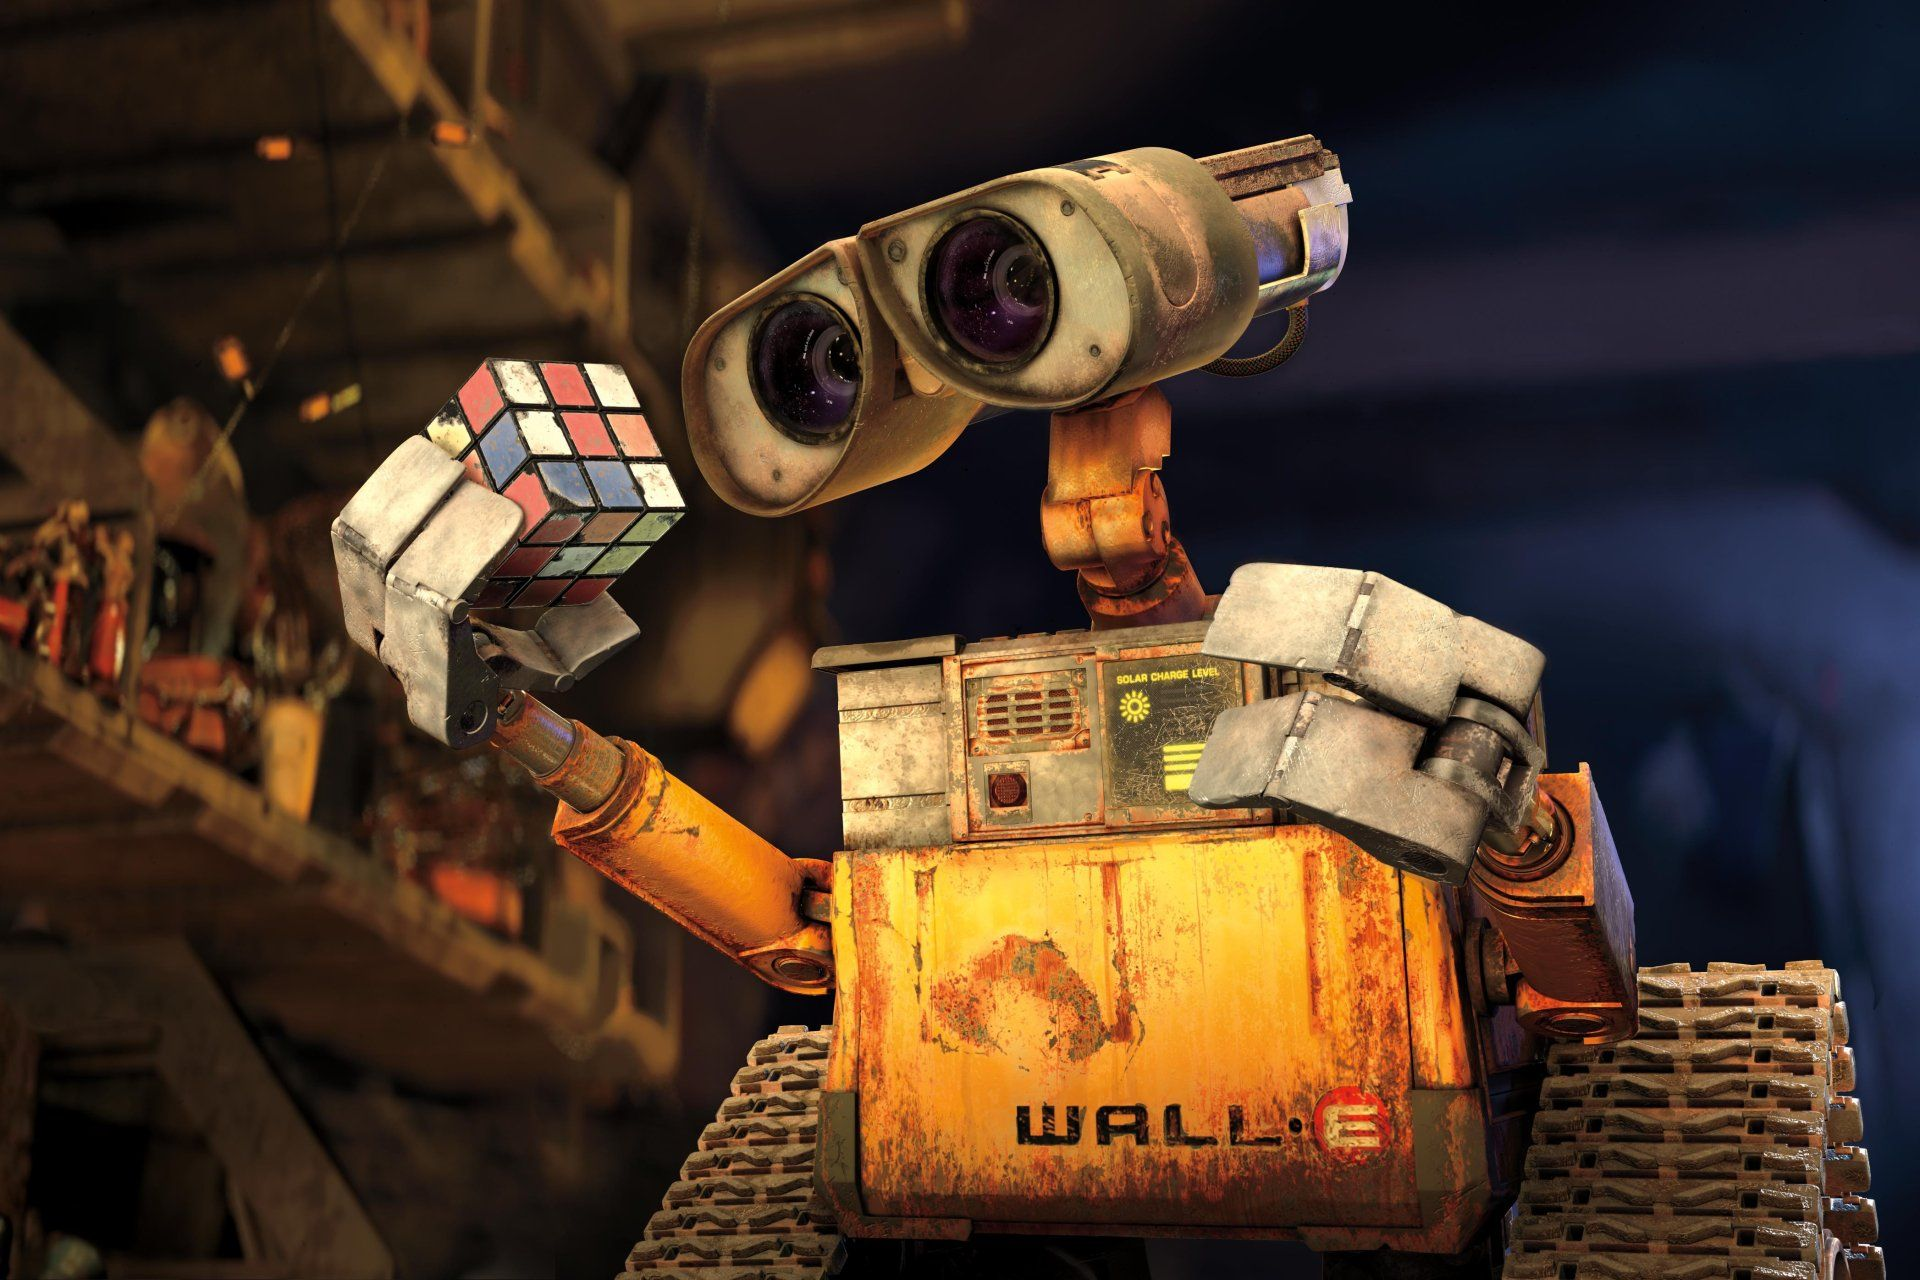 WALL-E Wallpapers hd